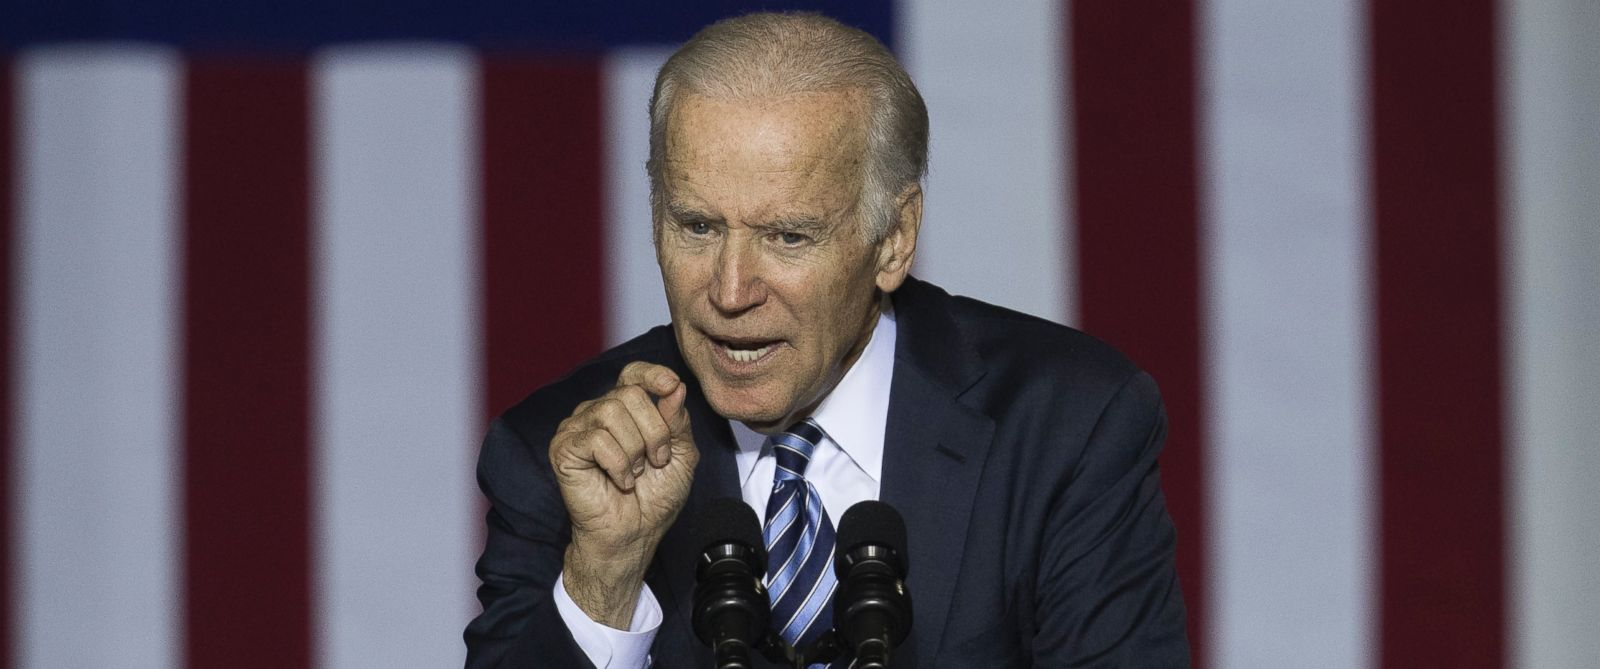 biden interview videos at abc news video archive at abcnews com biden trump has made presidential campaign so crude